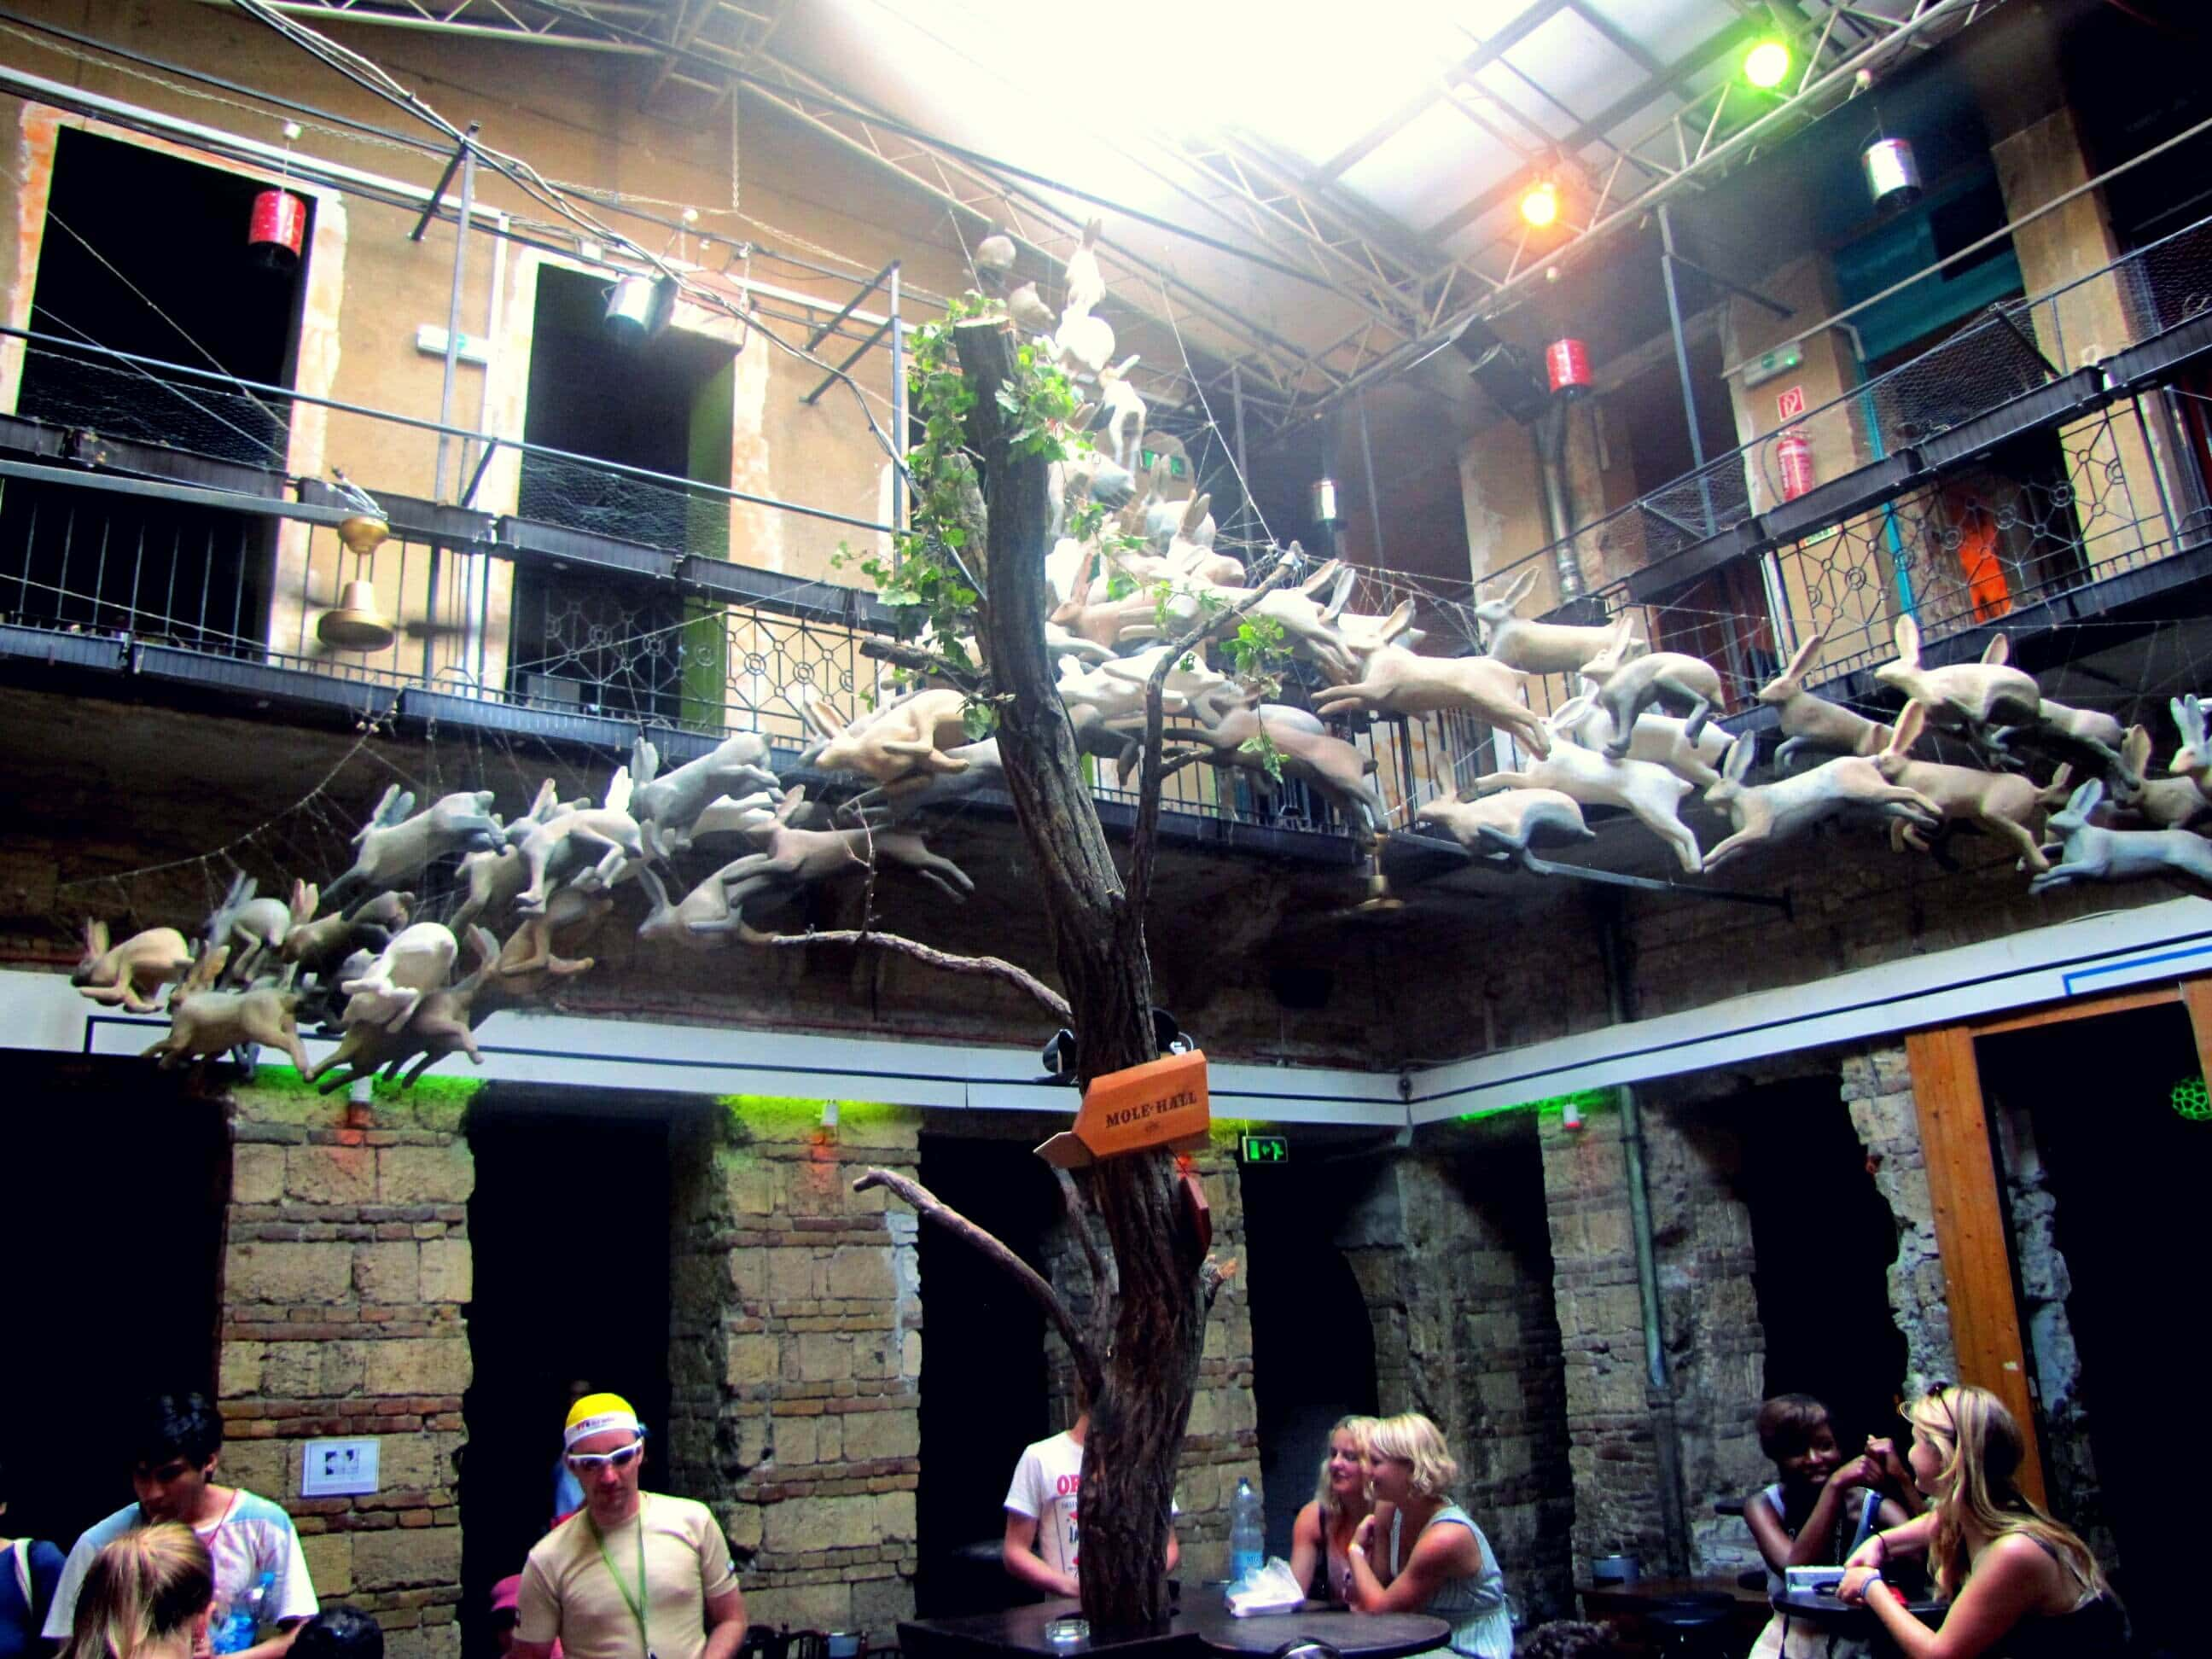 Gypsycoupe - Budapest Guide - Inside a Ruin Pub in Budapest